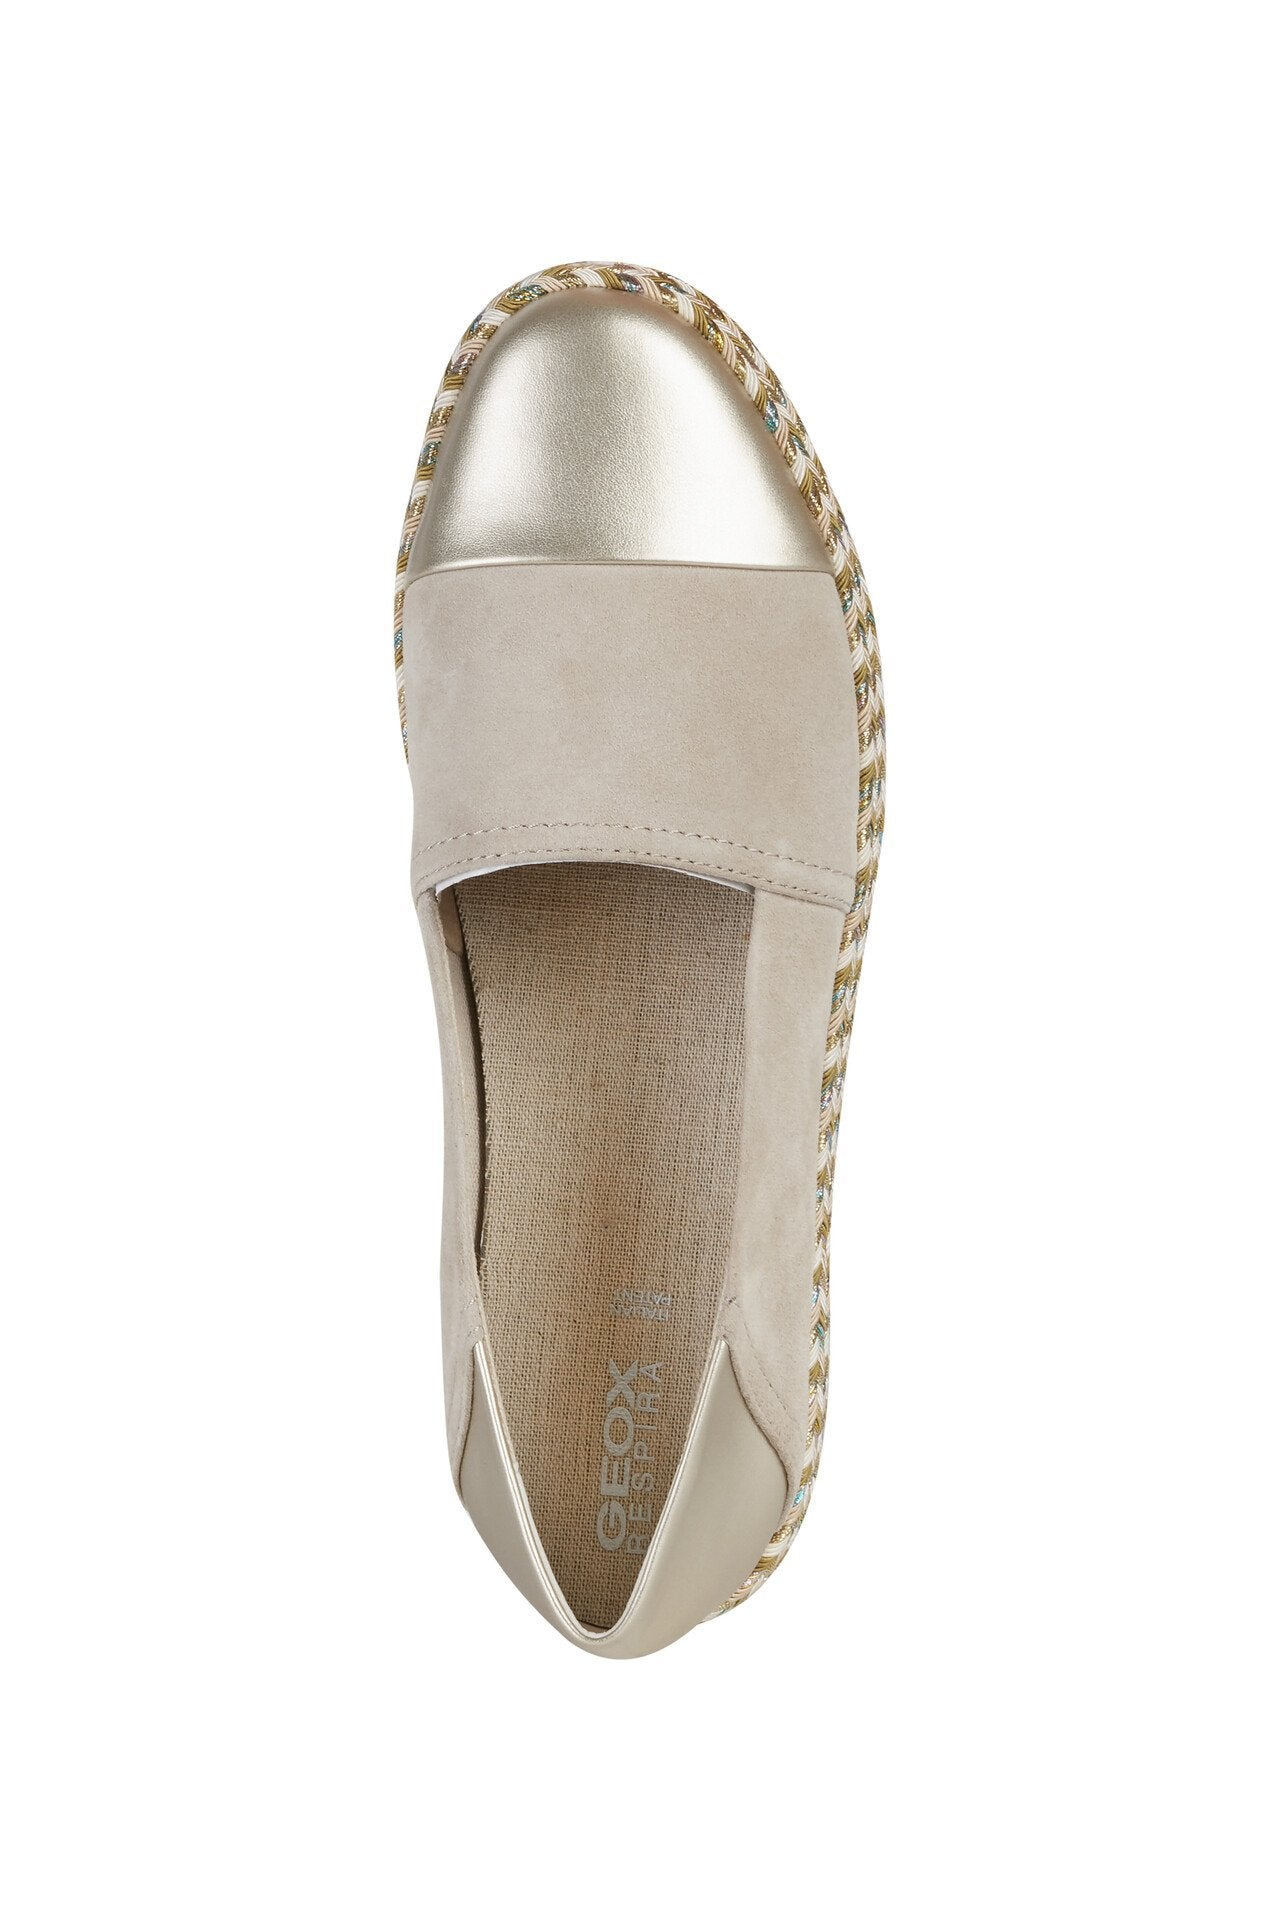 Geox Womens Beige Gold D Modesty Flats D8229A021NFC5258 | Vilbury London